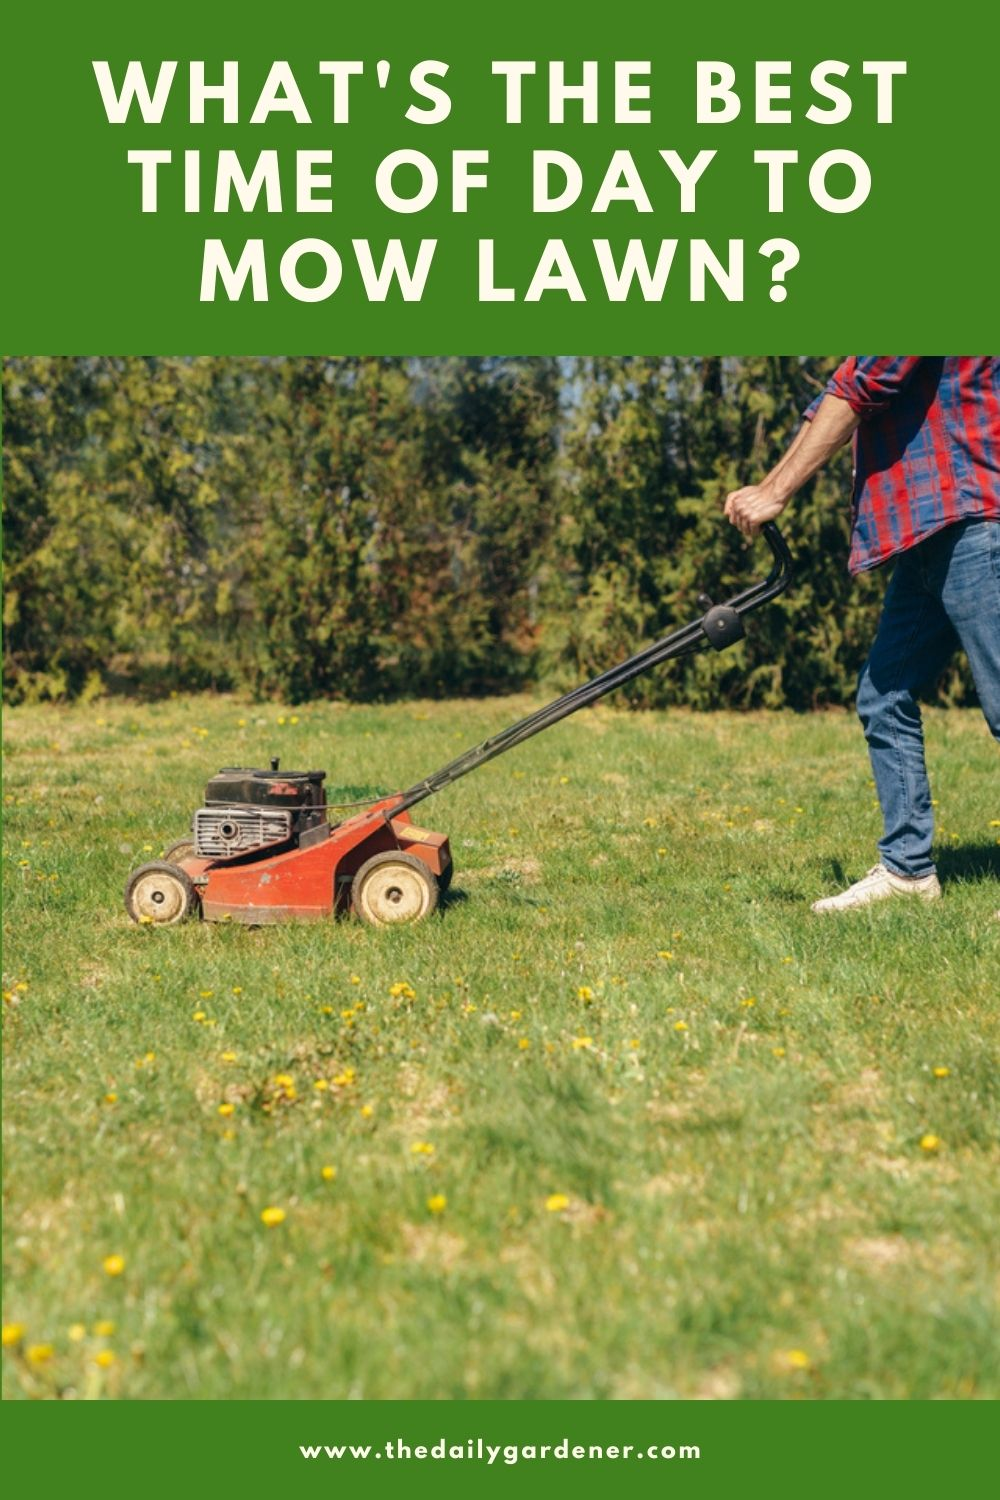 What's the Best Time of Day to Mow Lawn 1